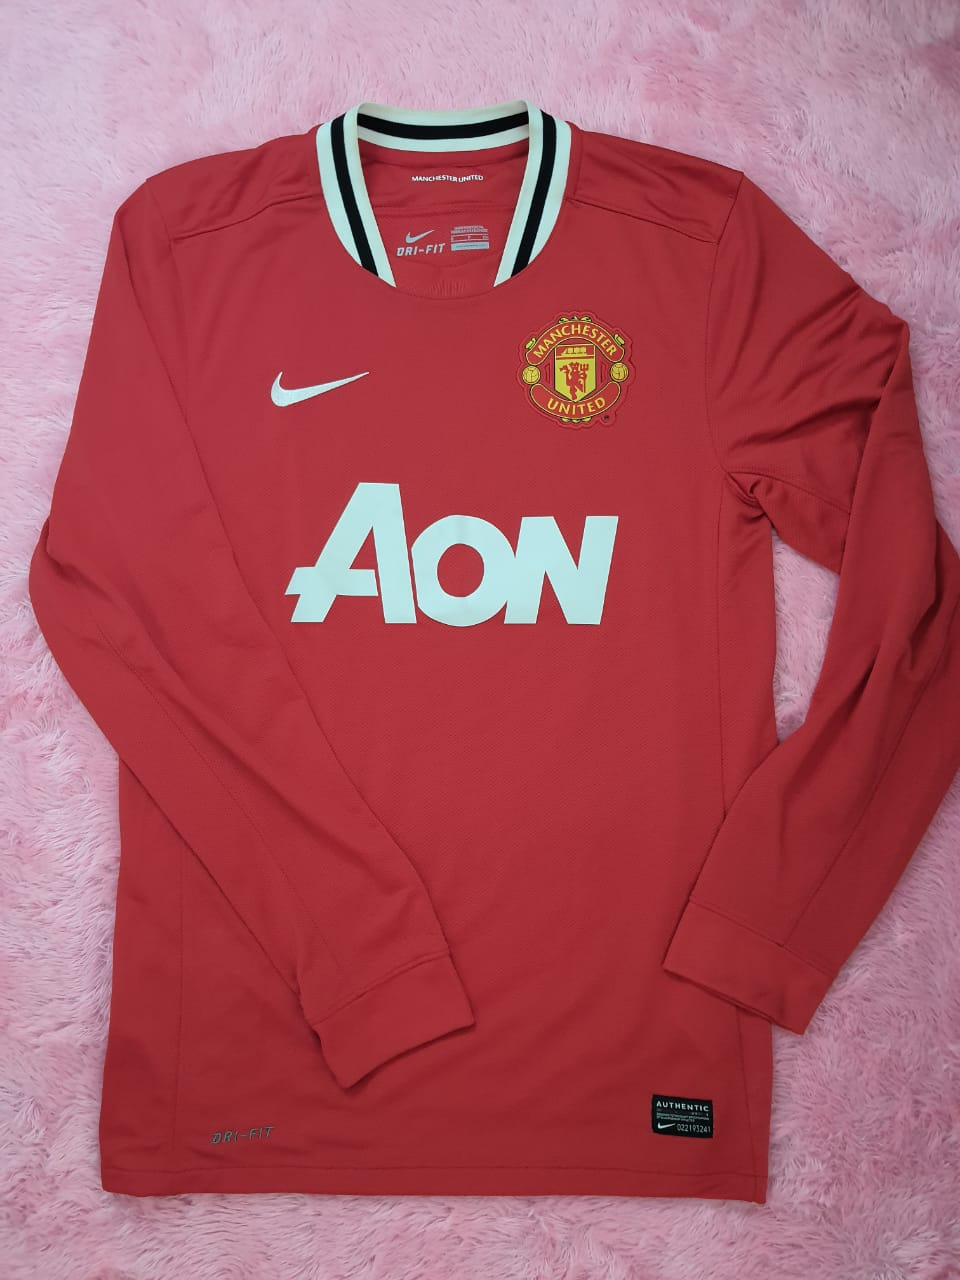 Jersey Home Manchester United 2011/12 (Original Long Sleeve)